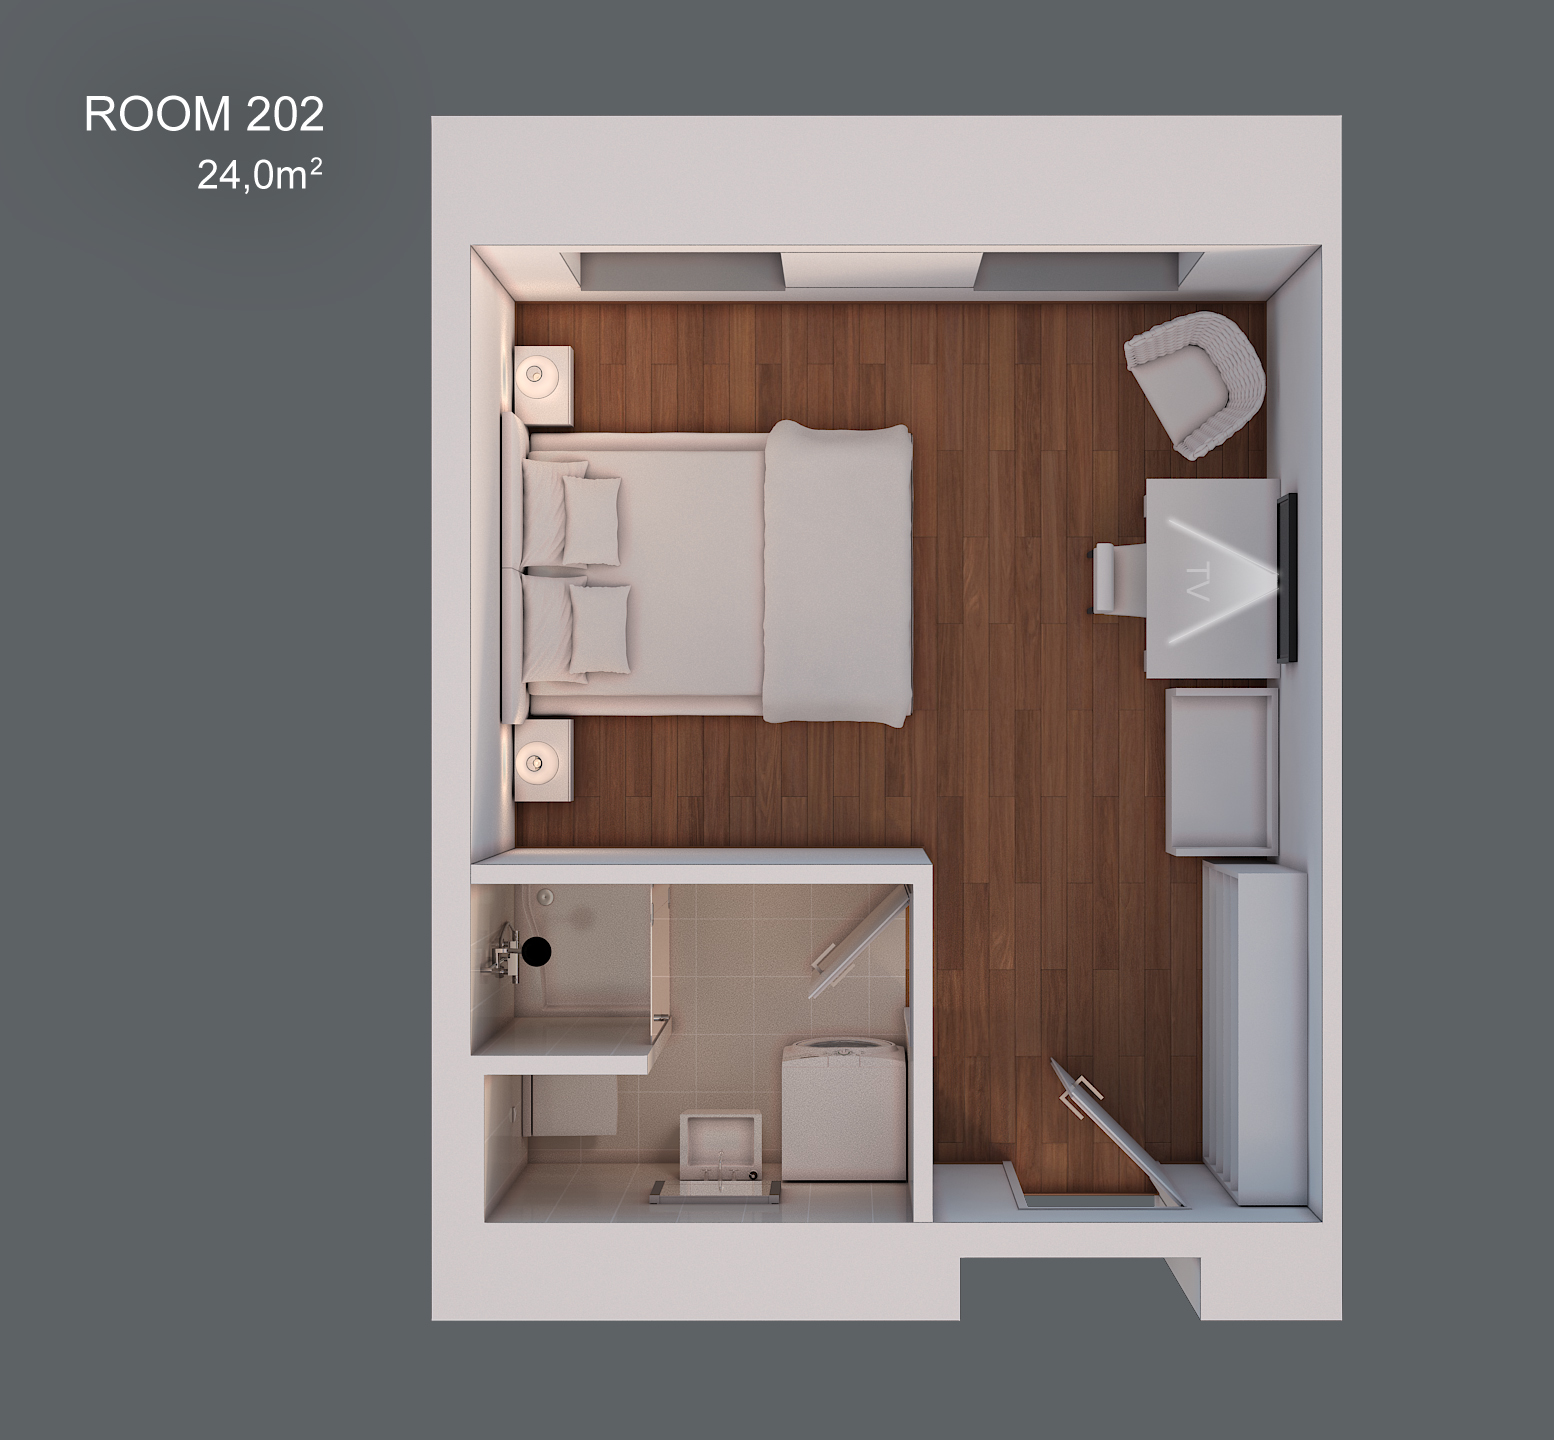 Room 202 layout